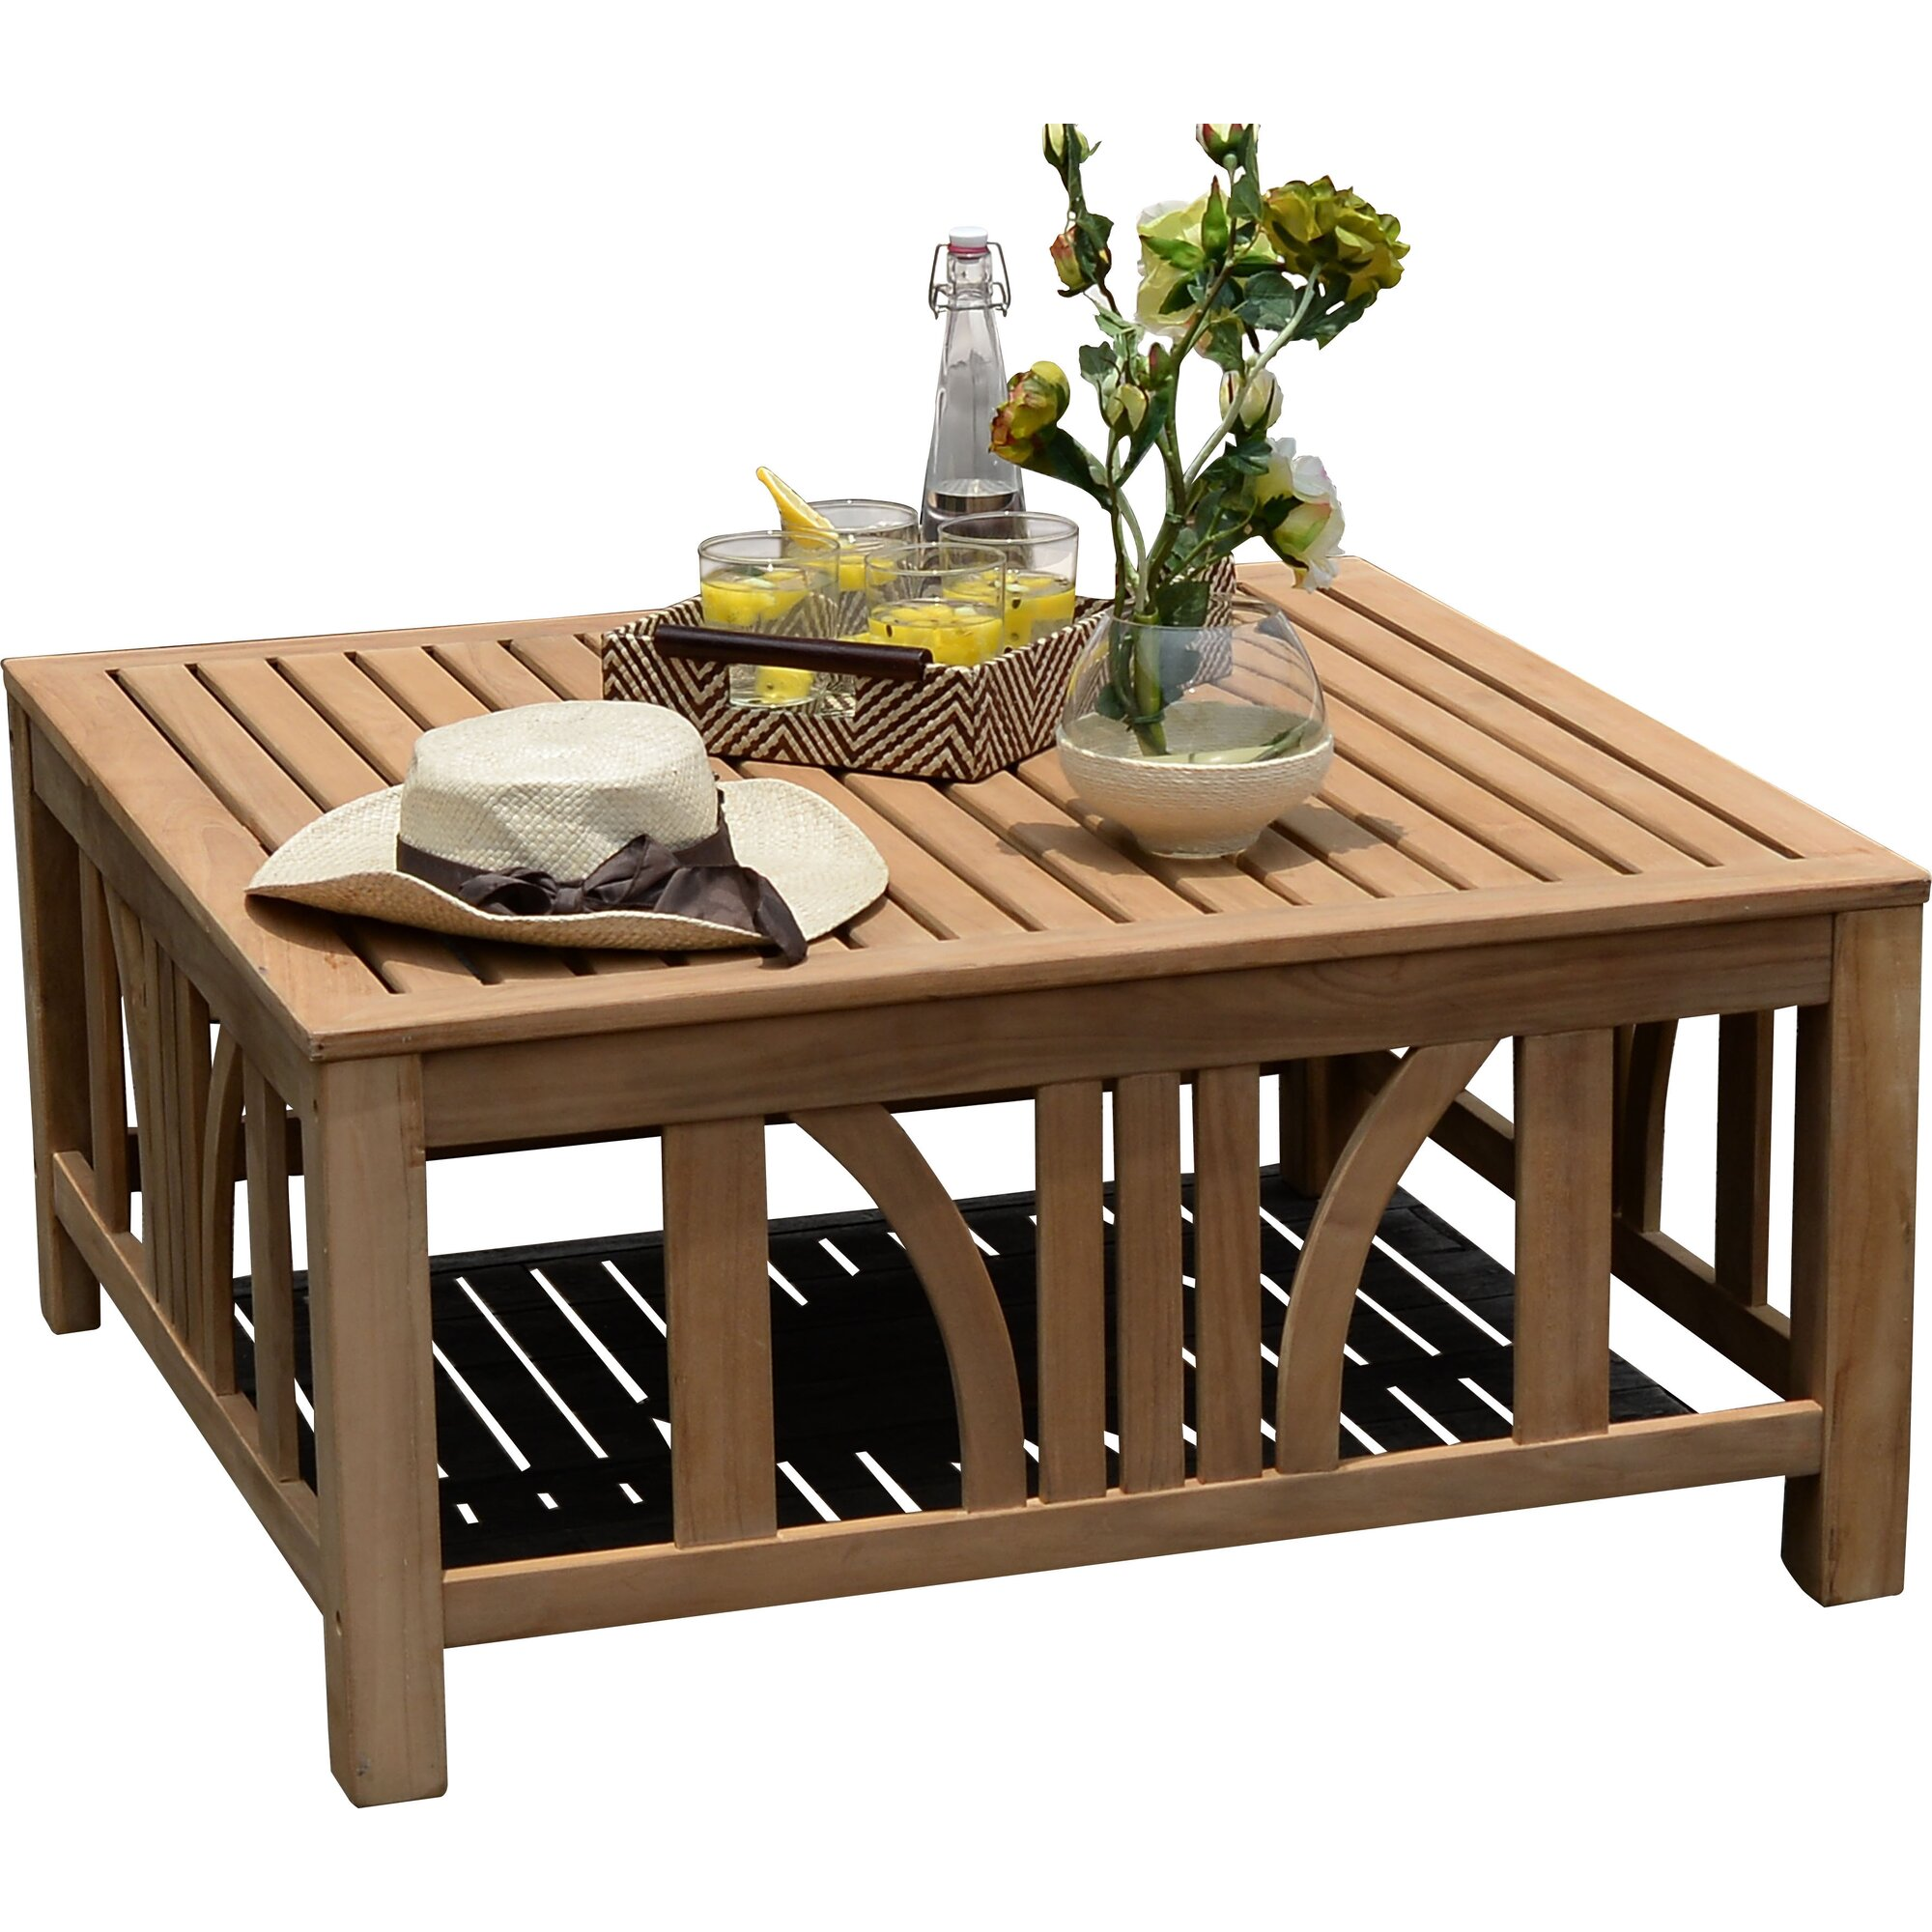 Cambridge casual kensington coffee table reviews wayfair for Wayfair outdoor coffee table